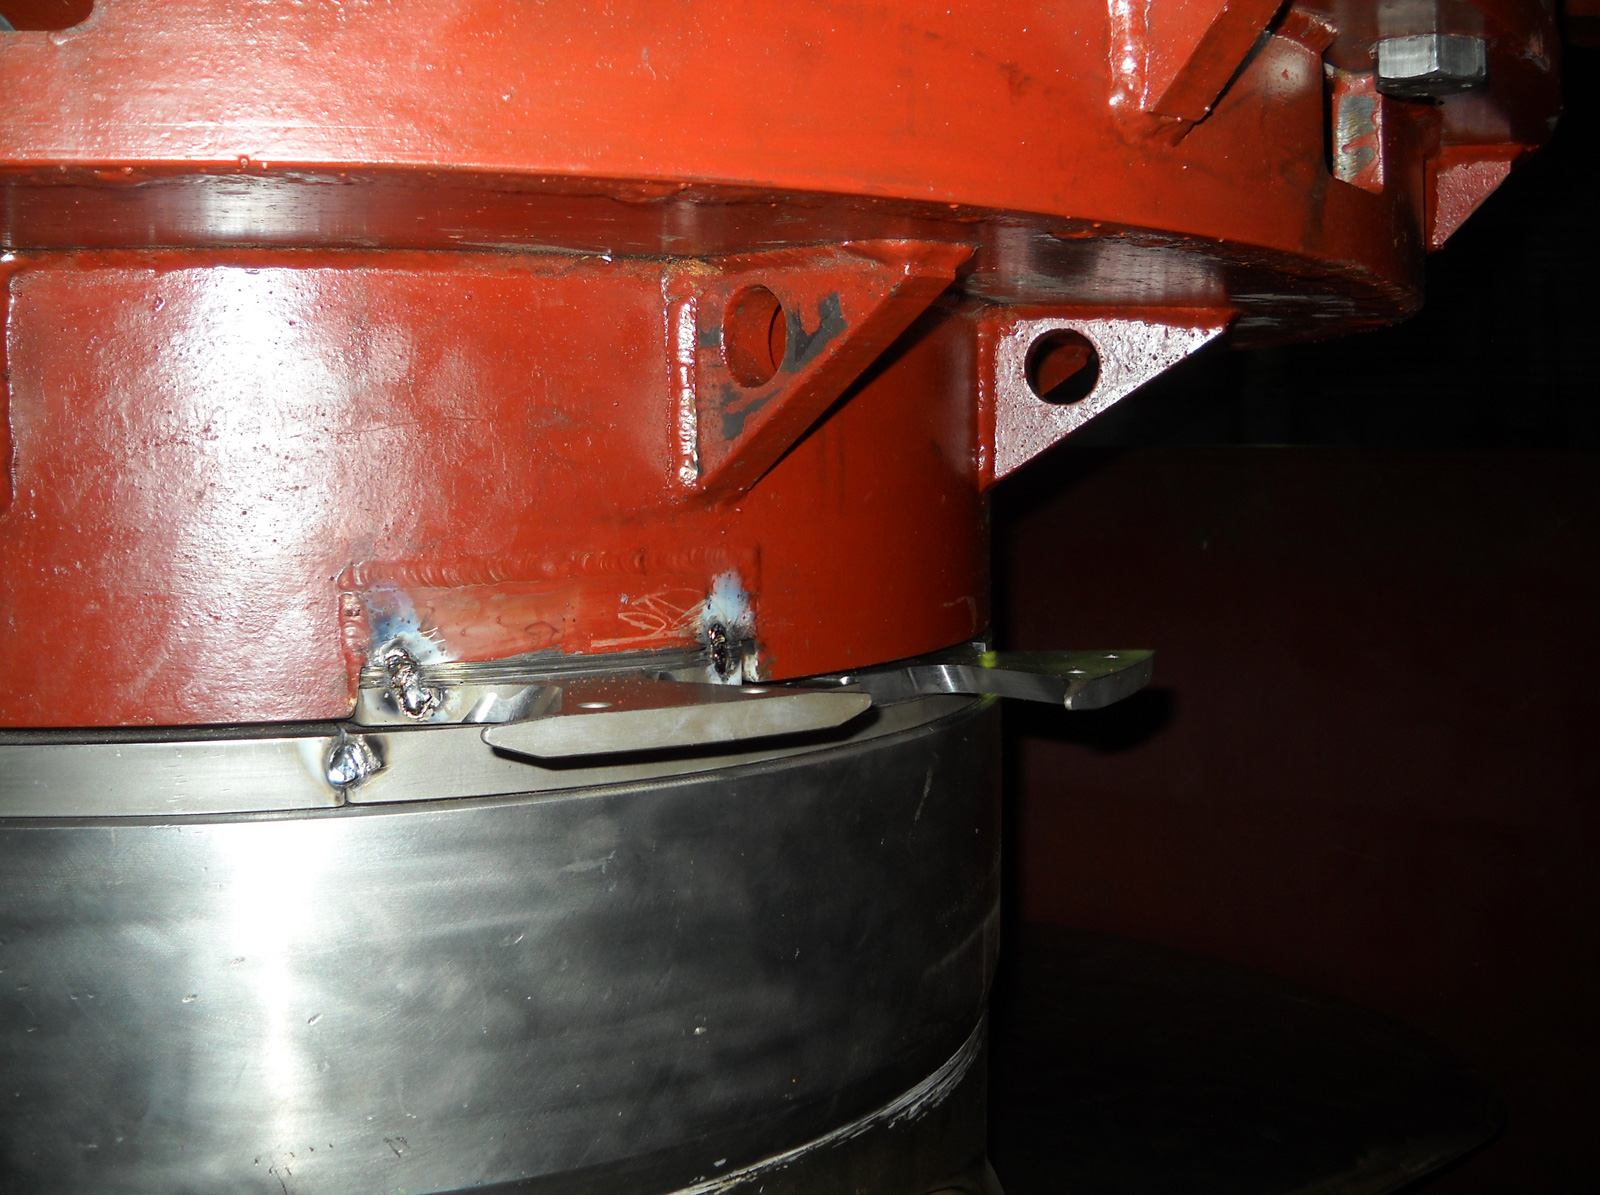 Cutters mounted on the propeller hub